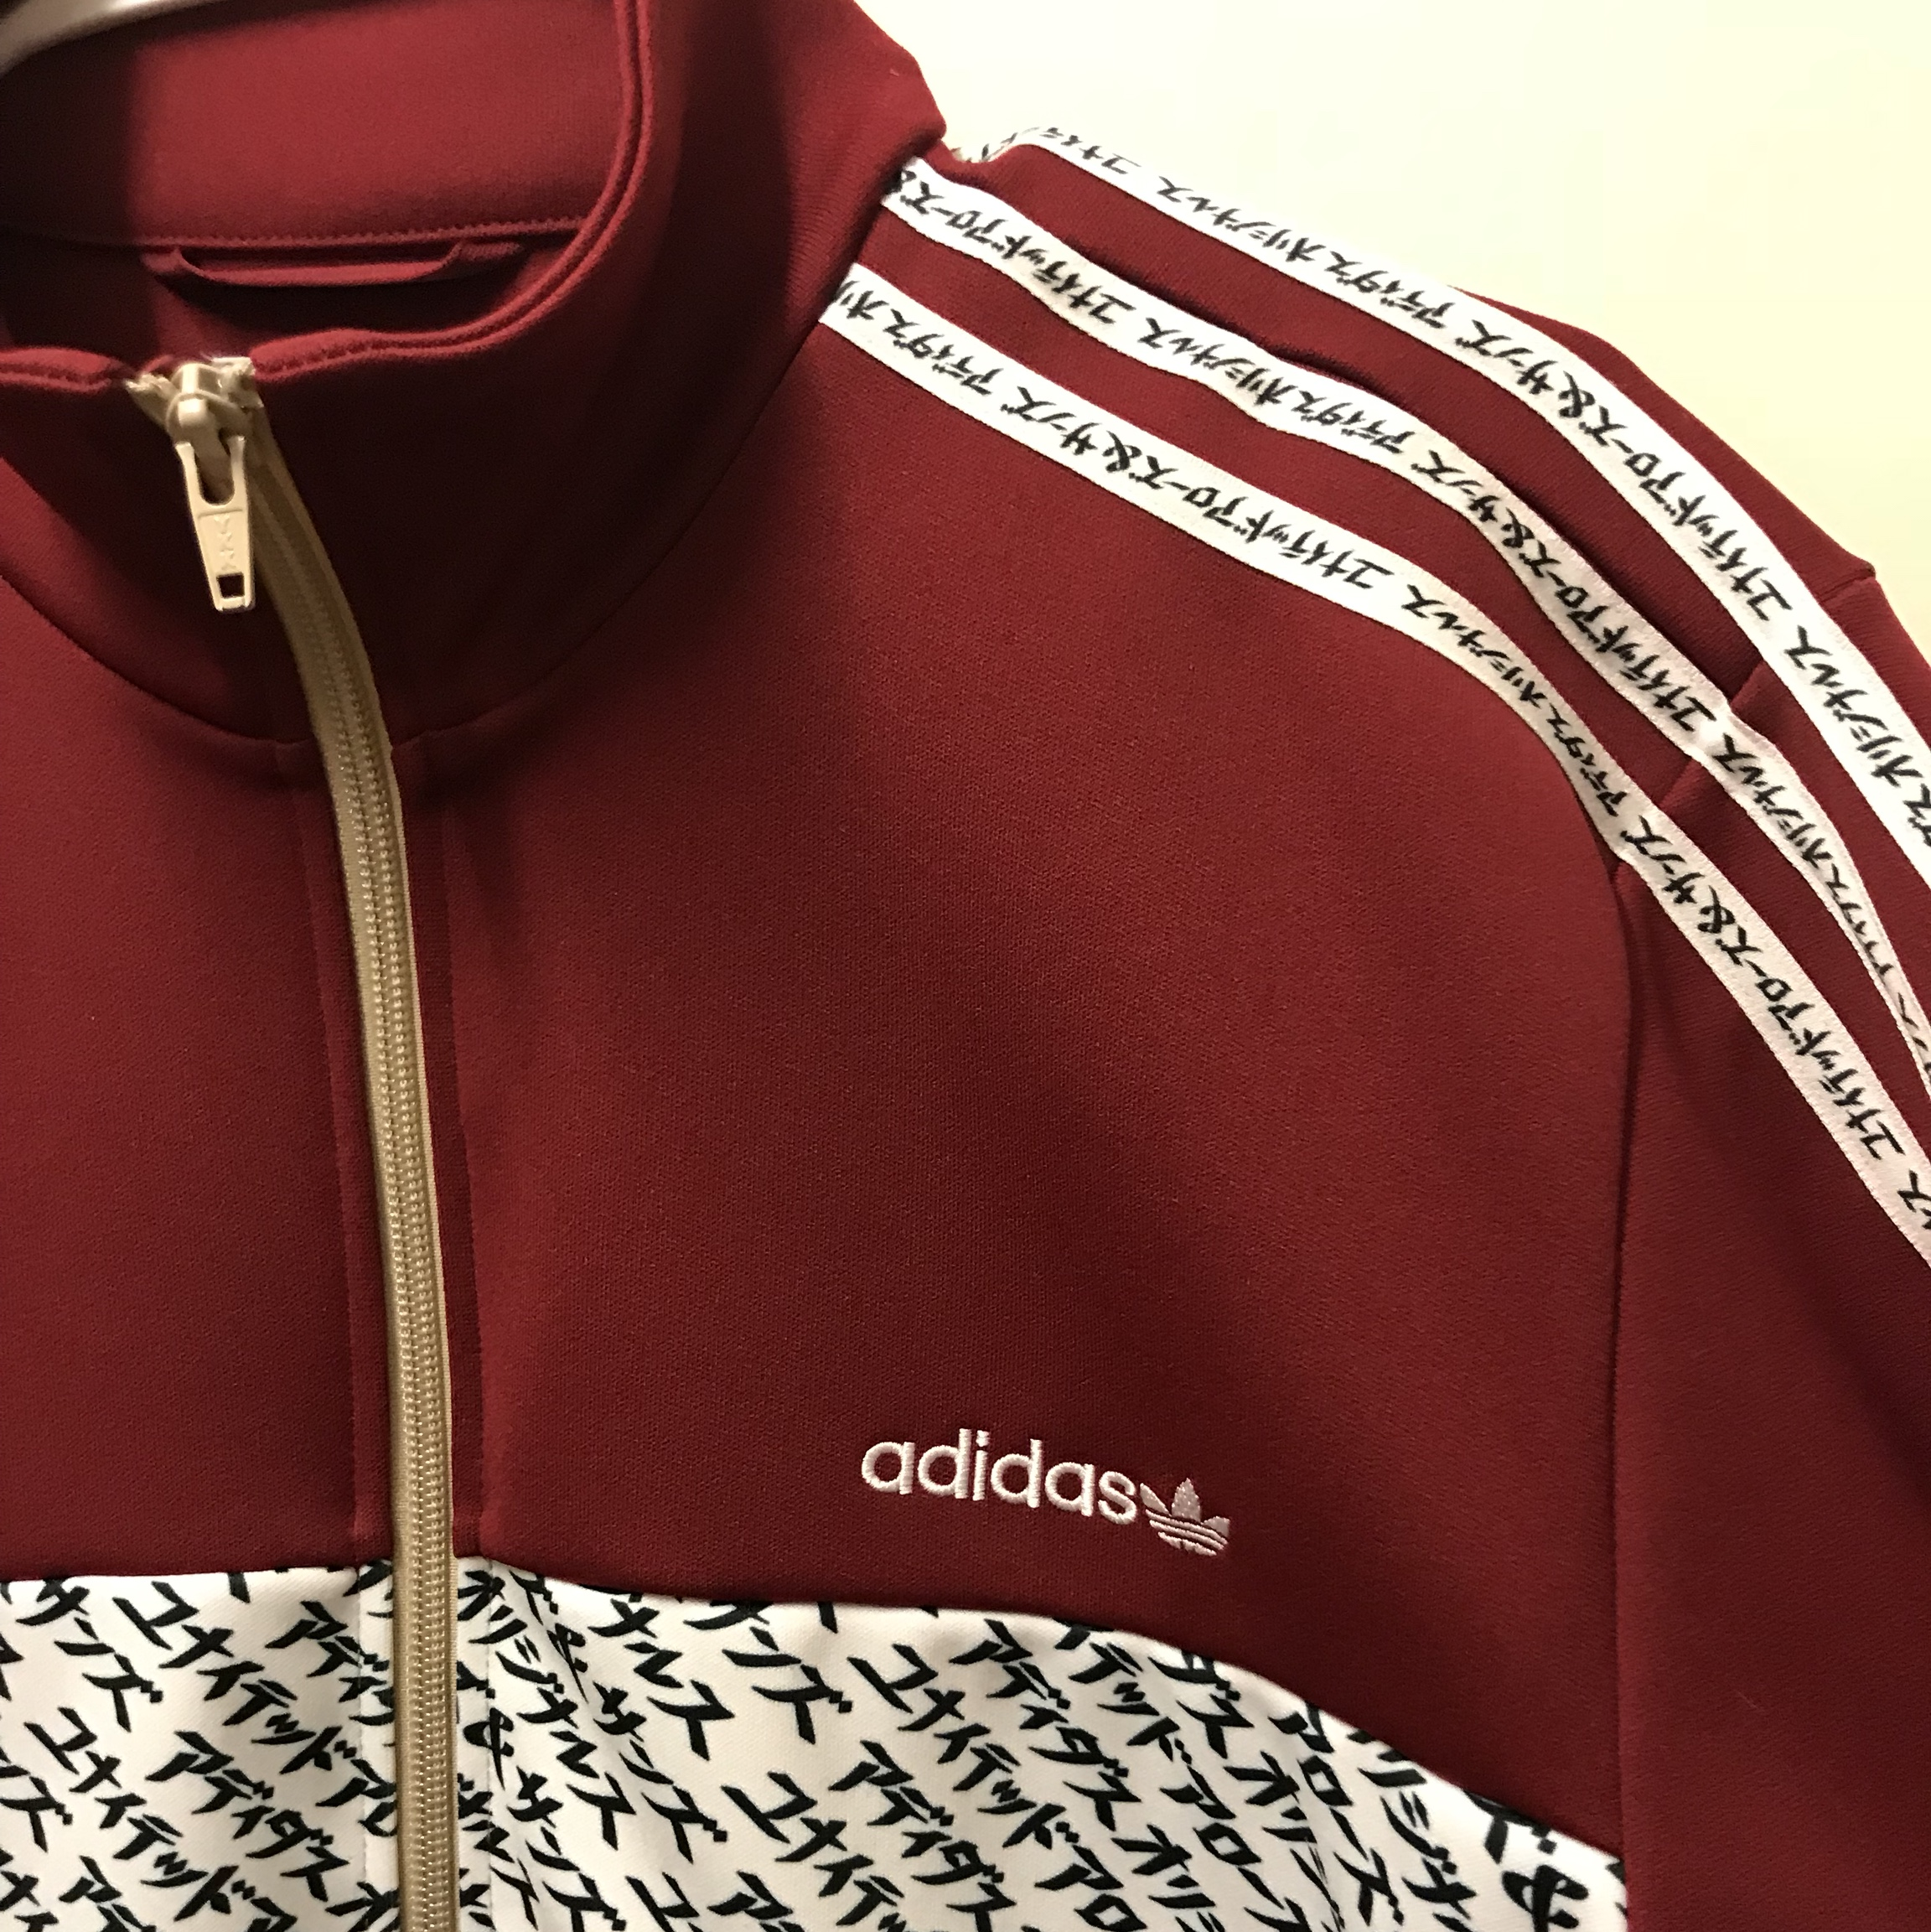 finest selection 7f1a2 343a7 Adidas x United arrows mikitype jacket Burgundy... - Depop